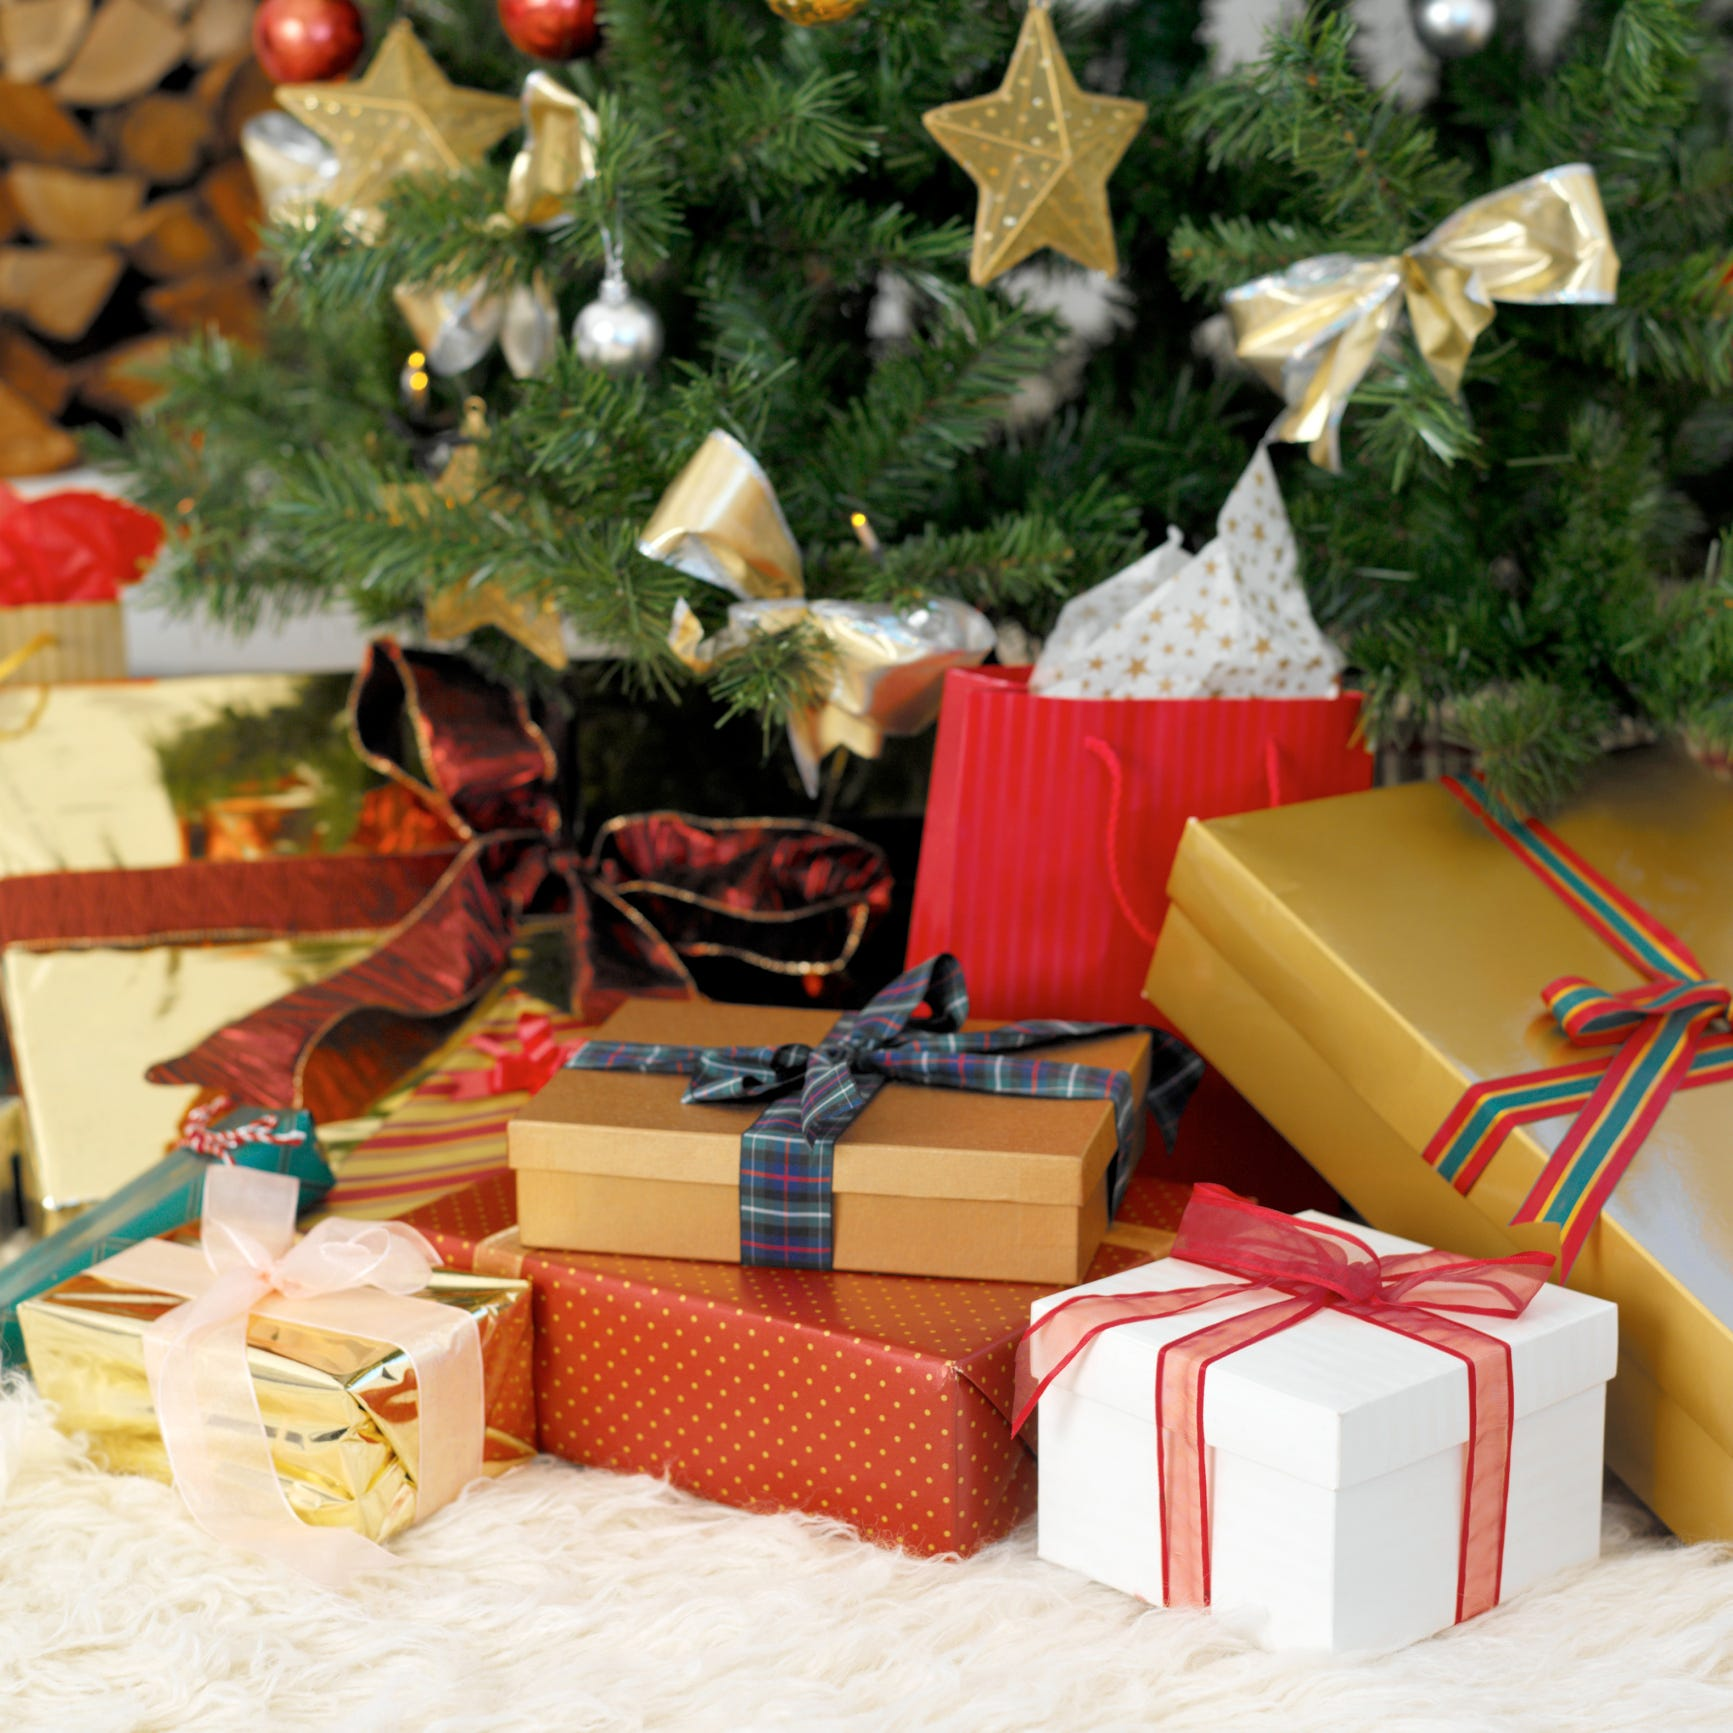 12 days of christmas gift items